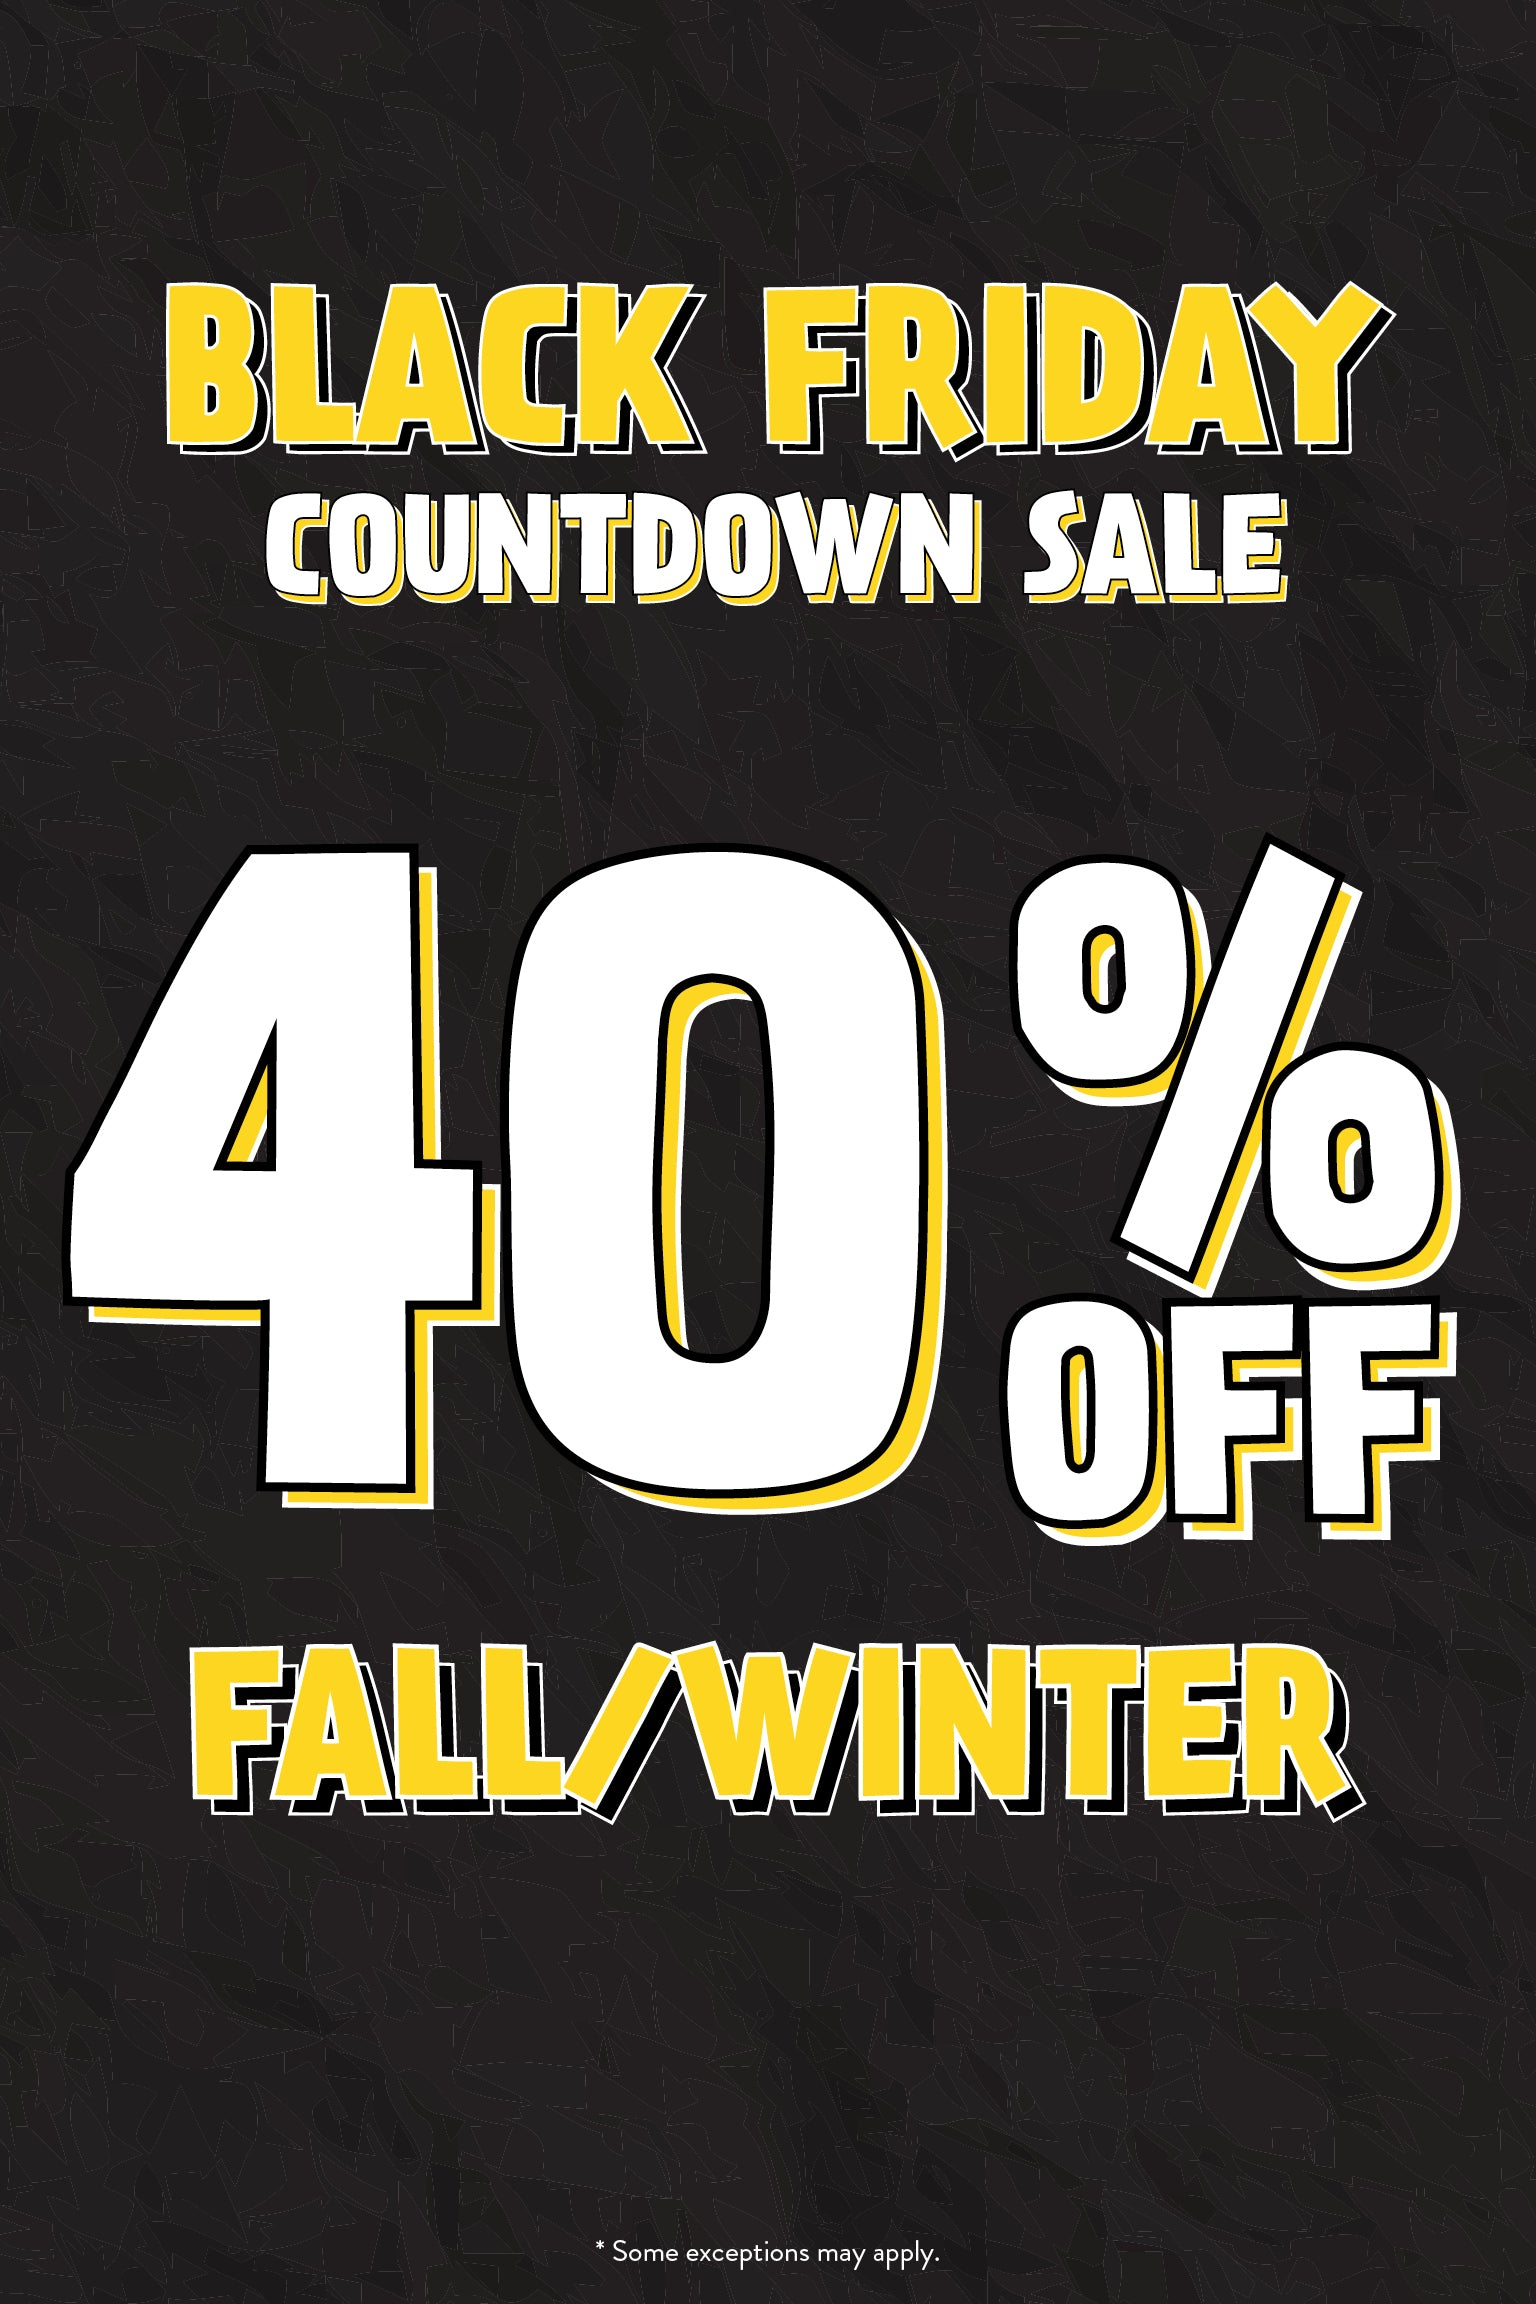 Black Friday Countdown Sale - 40% Off